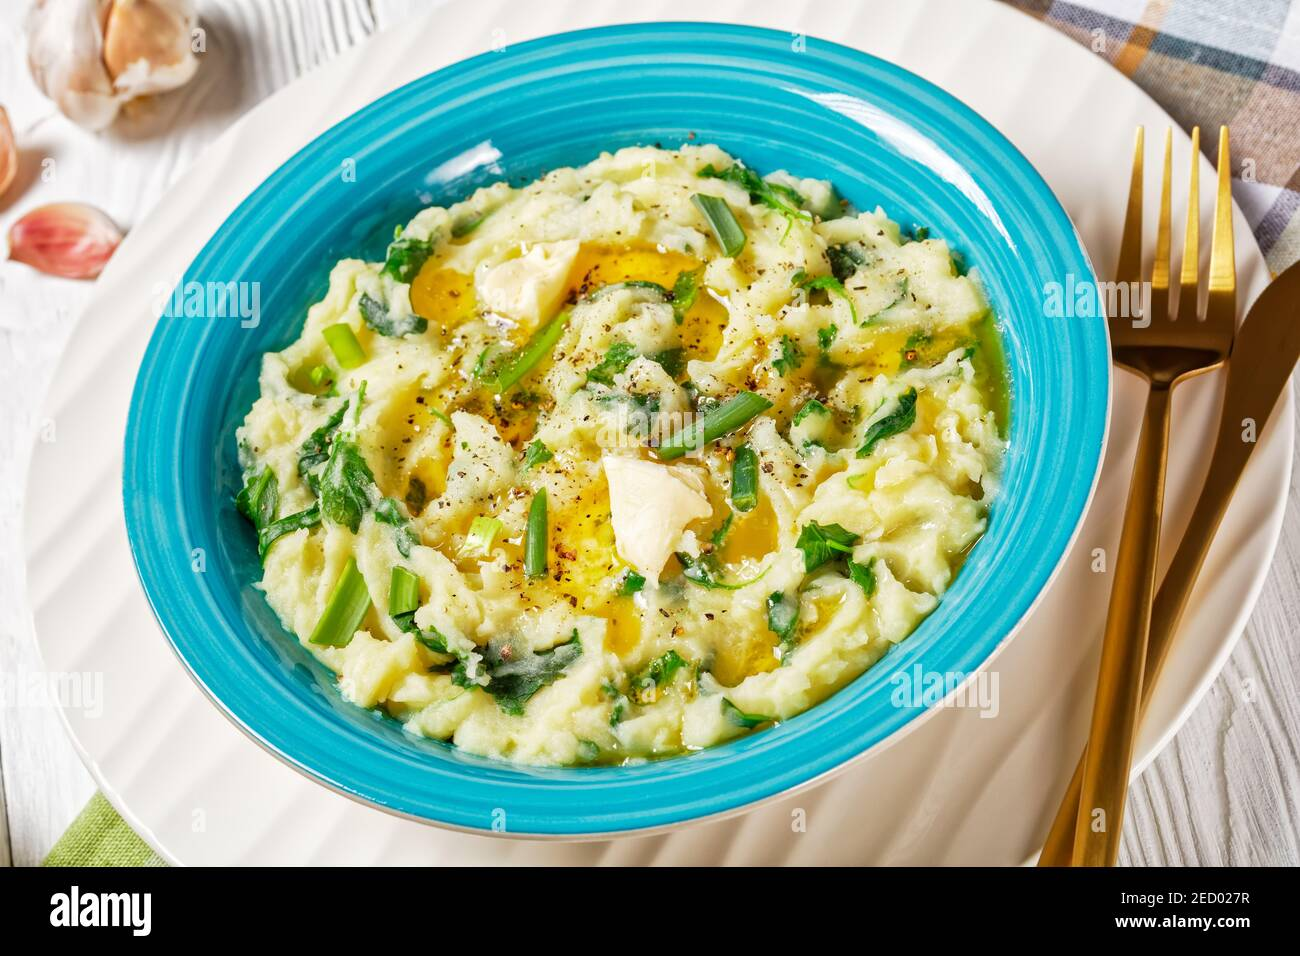 Irish colcannon traditional potato mash with kale, garlic, melted butter and spring onion served on a blue bowl, white counter plate on a white wooden Stock Photo